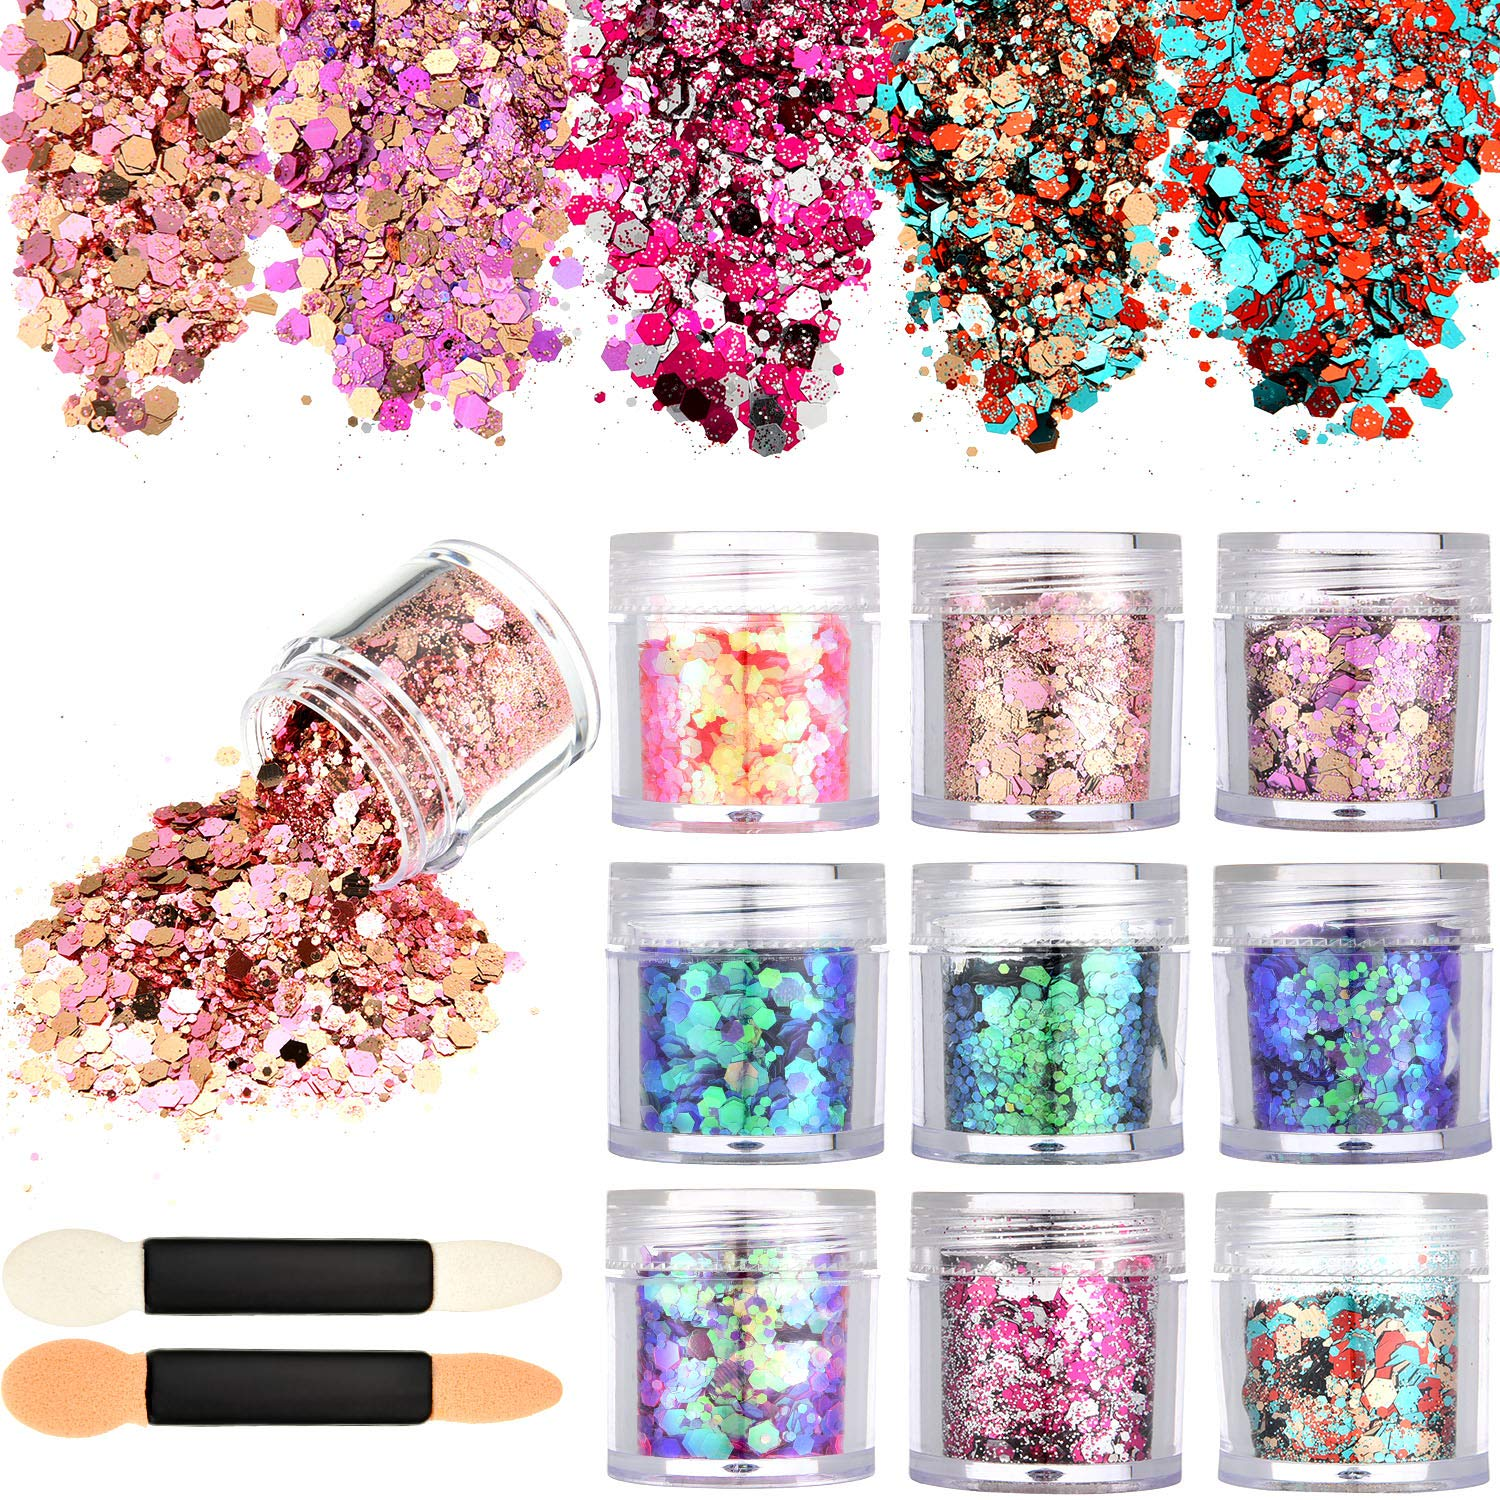 Beauty & Health 1 Bottle Mermaid Sequins Gel Glitter Eyeshadow Makeup Cosmetic Mixed Paillette For Face Body Hair Nshopping Eye Shadow